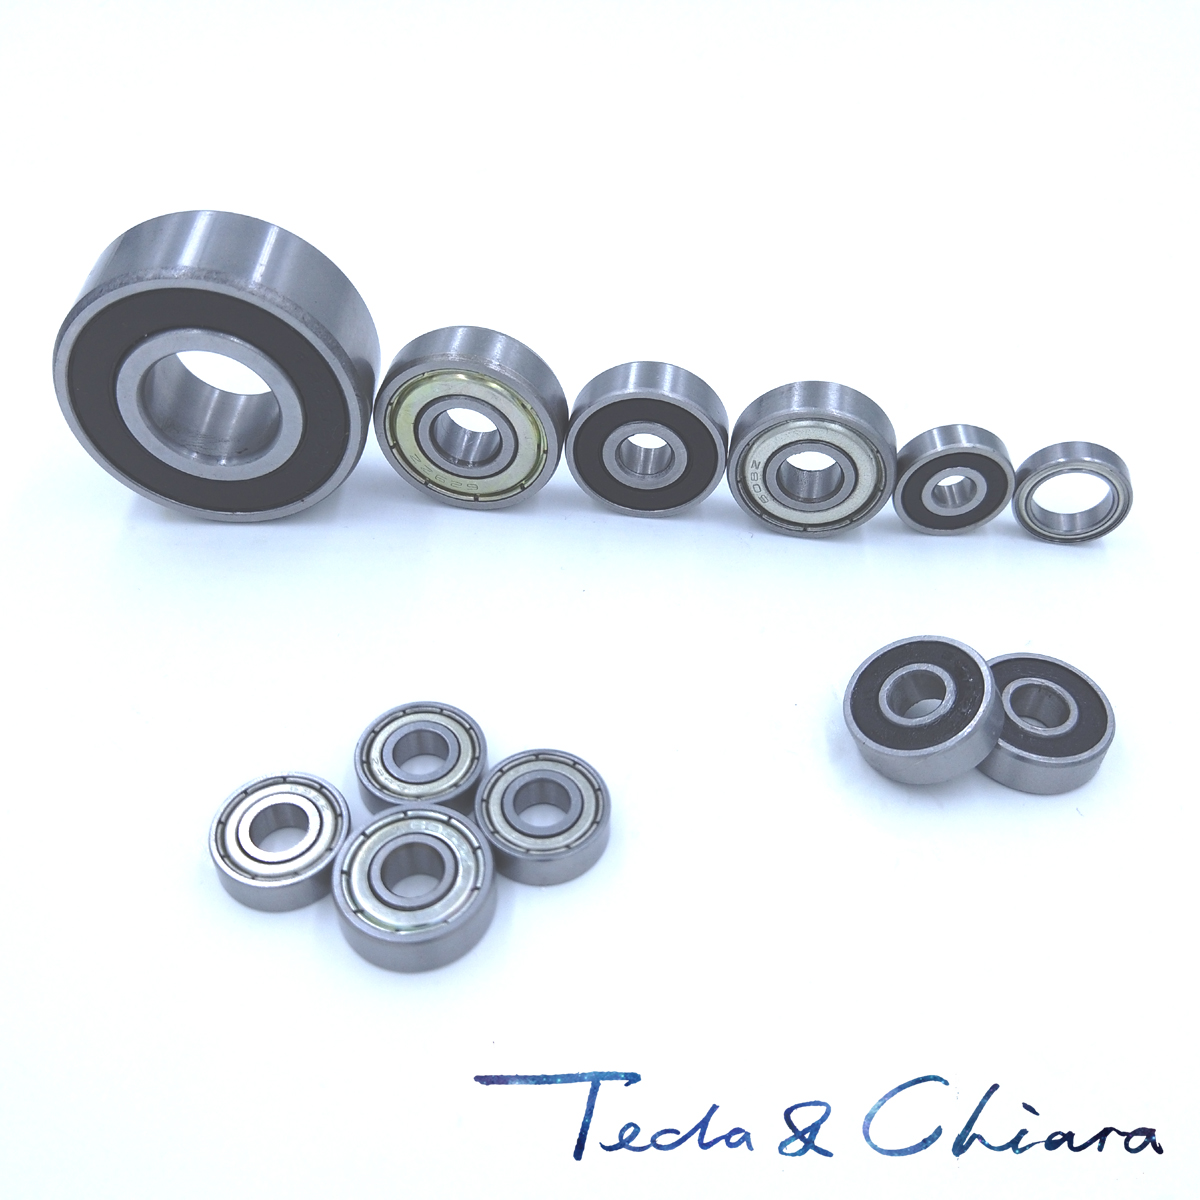 10Pcs 604 <font><b>604ZZ</b></font> 604RS 604-2Z 604Z 604-2RS ZZ RS RZ 2RZ Deep Groove Ball Bearings 4 x 12 x 4mm High Quality image